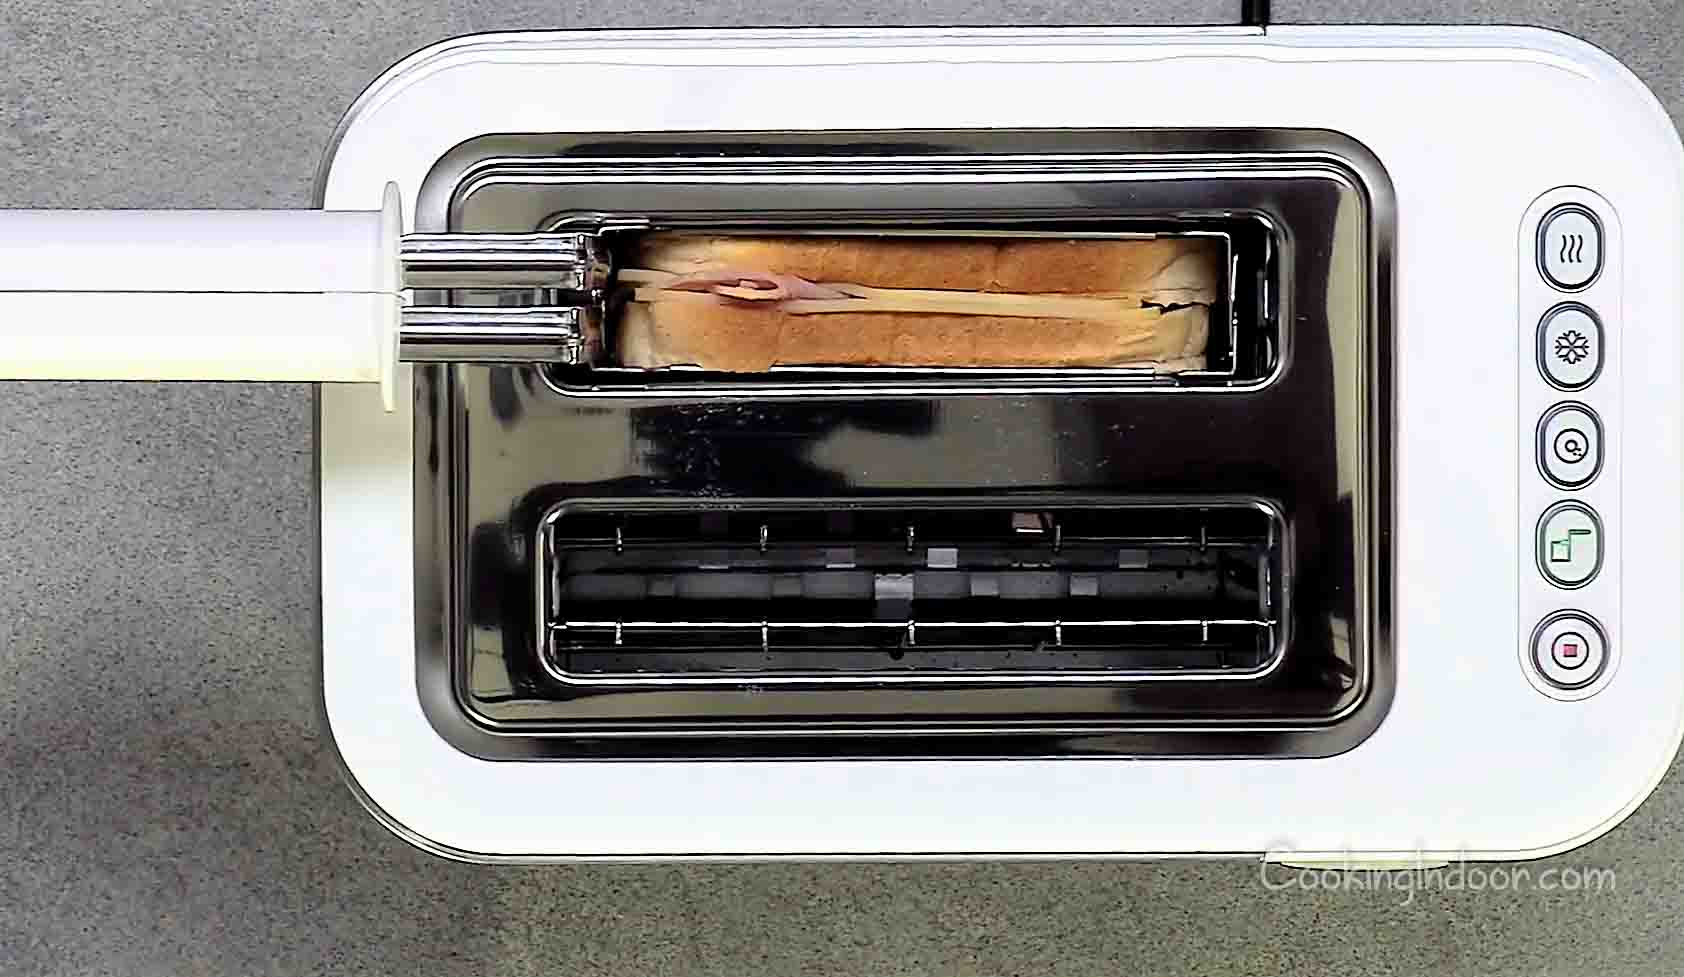 Best Braun toaster